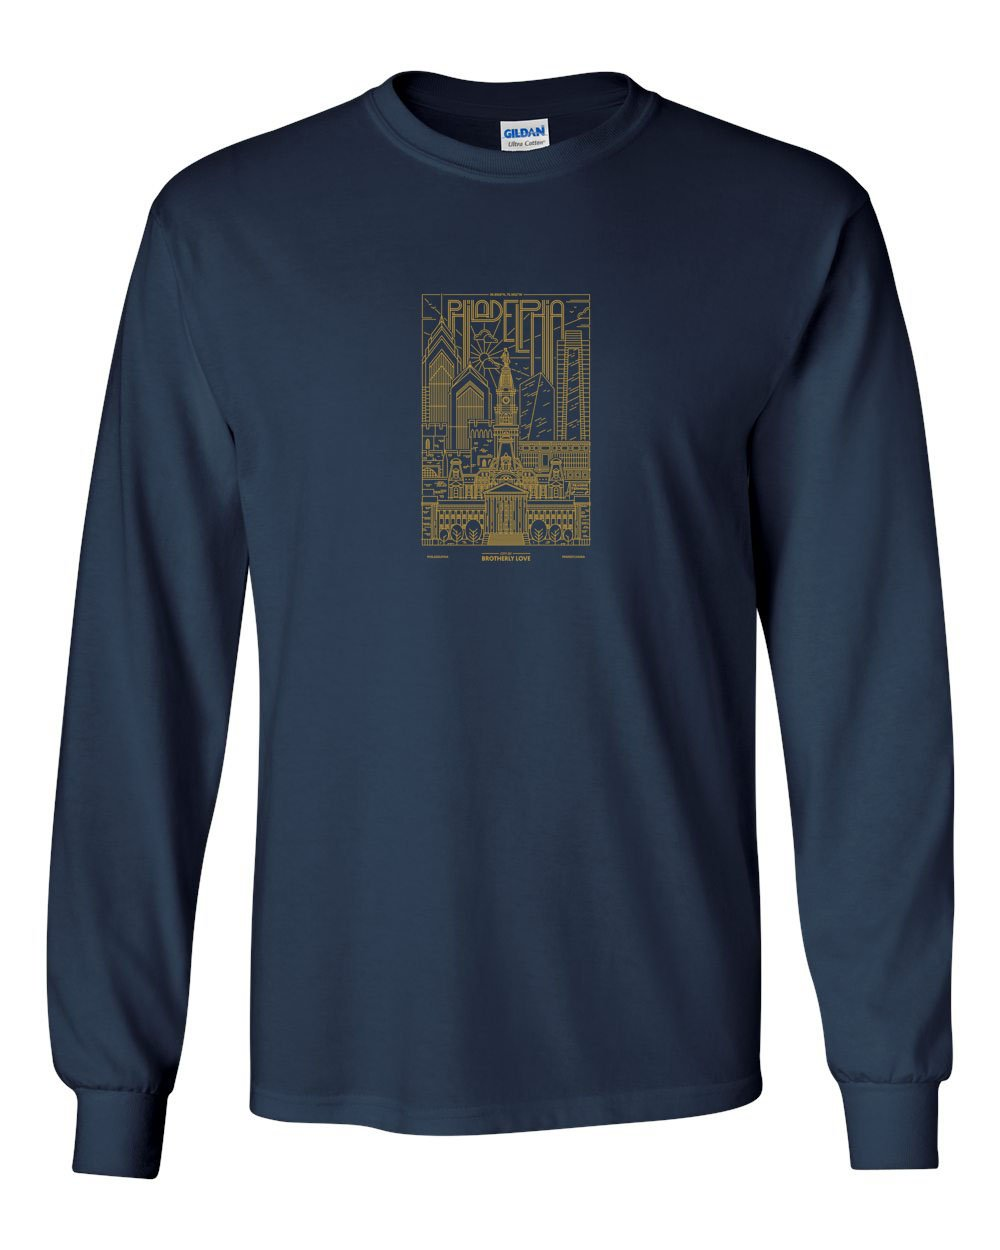 Philadelphia Skyline V2 (Soccer) MENS Long Sleeve Heavy Cotton T-Shirt